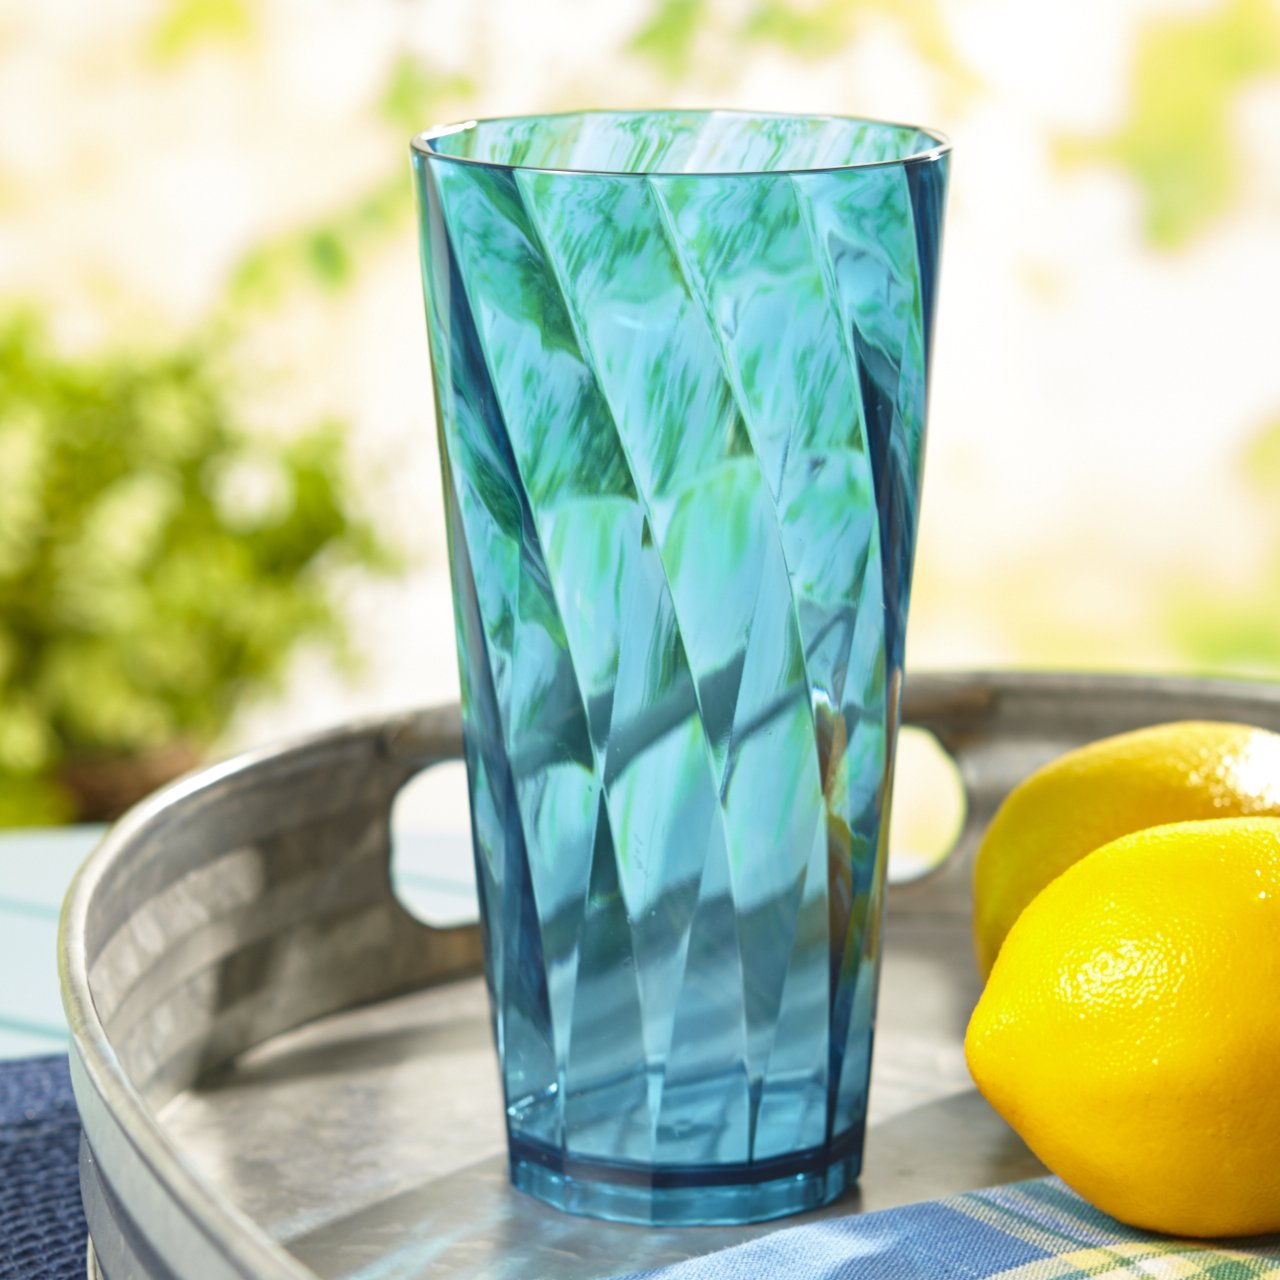 Optix 26-ounce Plastic Tumblers | set of 8 in 4 assorted colors by US Acrylic (Image #6)